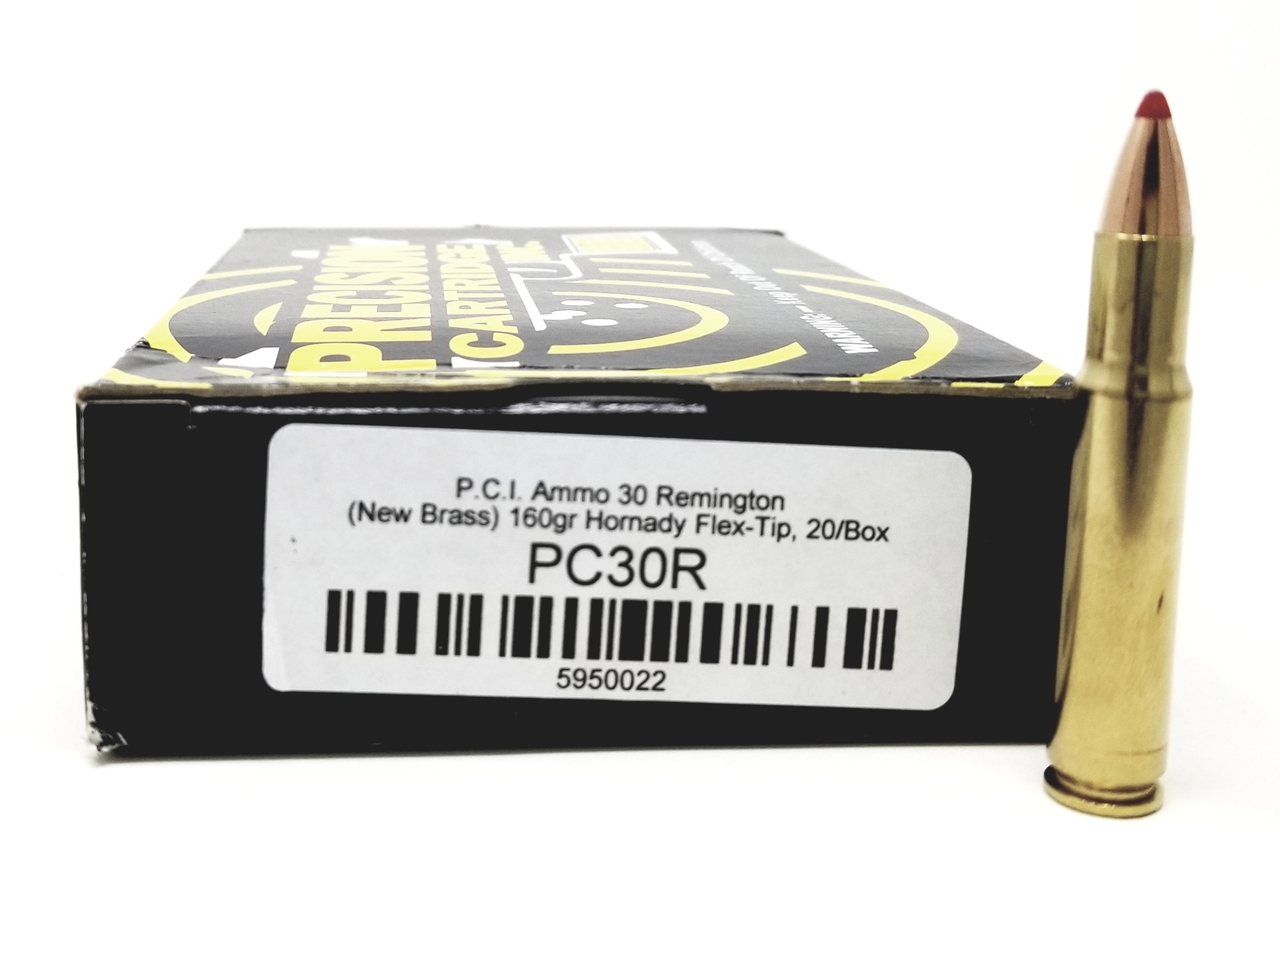 30 Remington Ammo